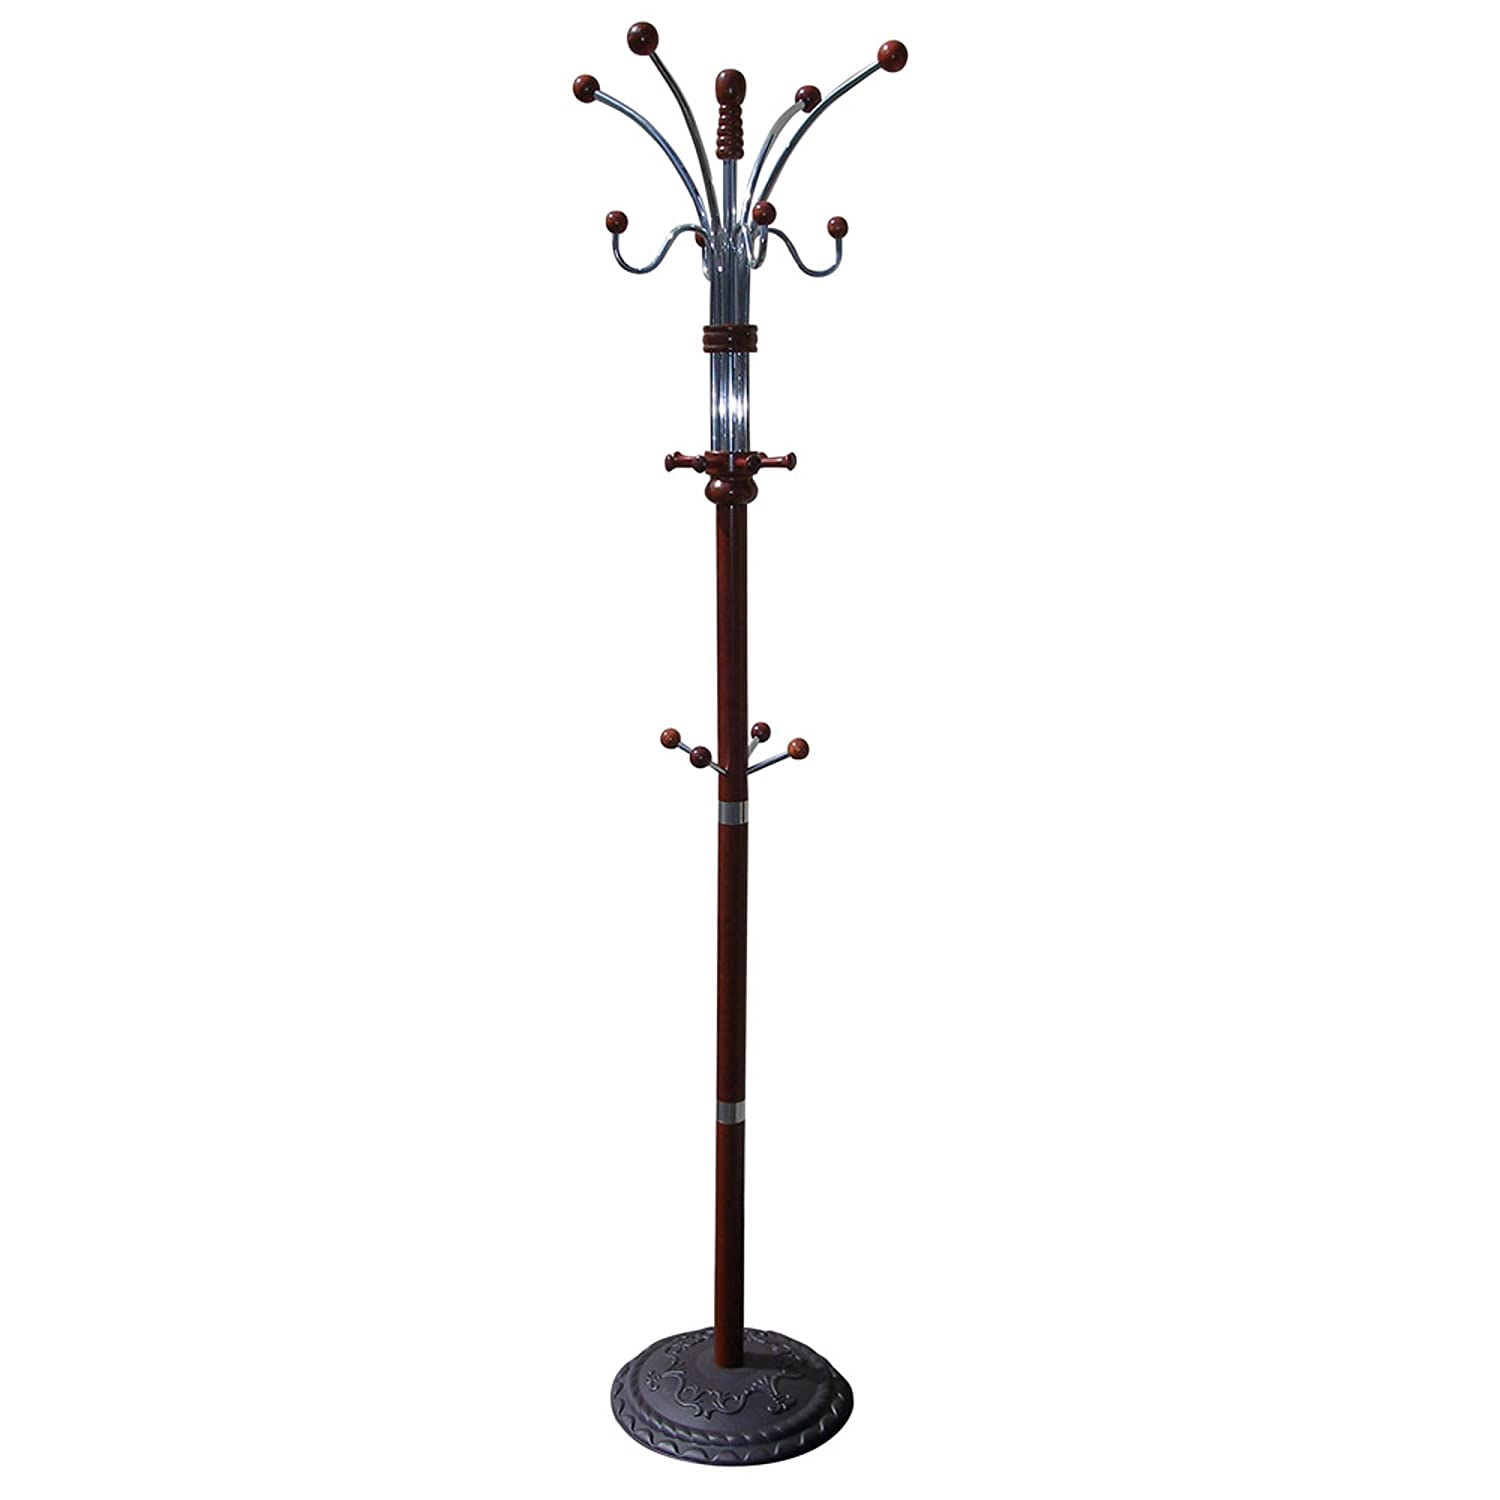 ORE International R685CH Six Foot Wood and Chrome Coat Rack Cherry Finish